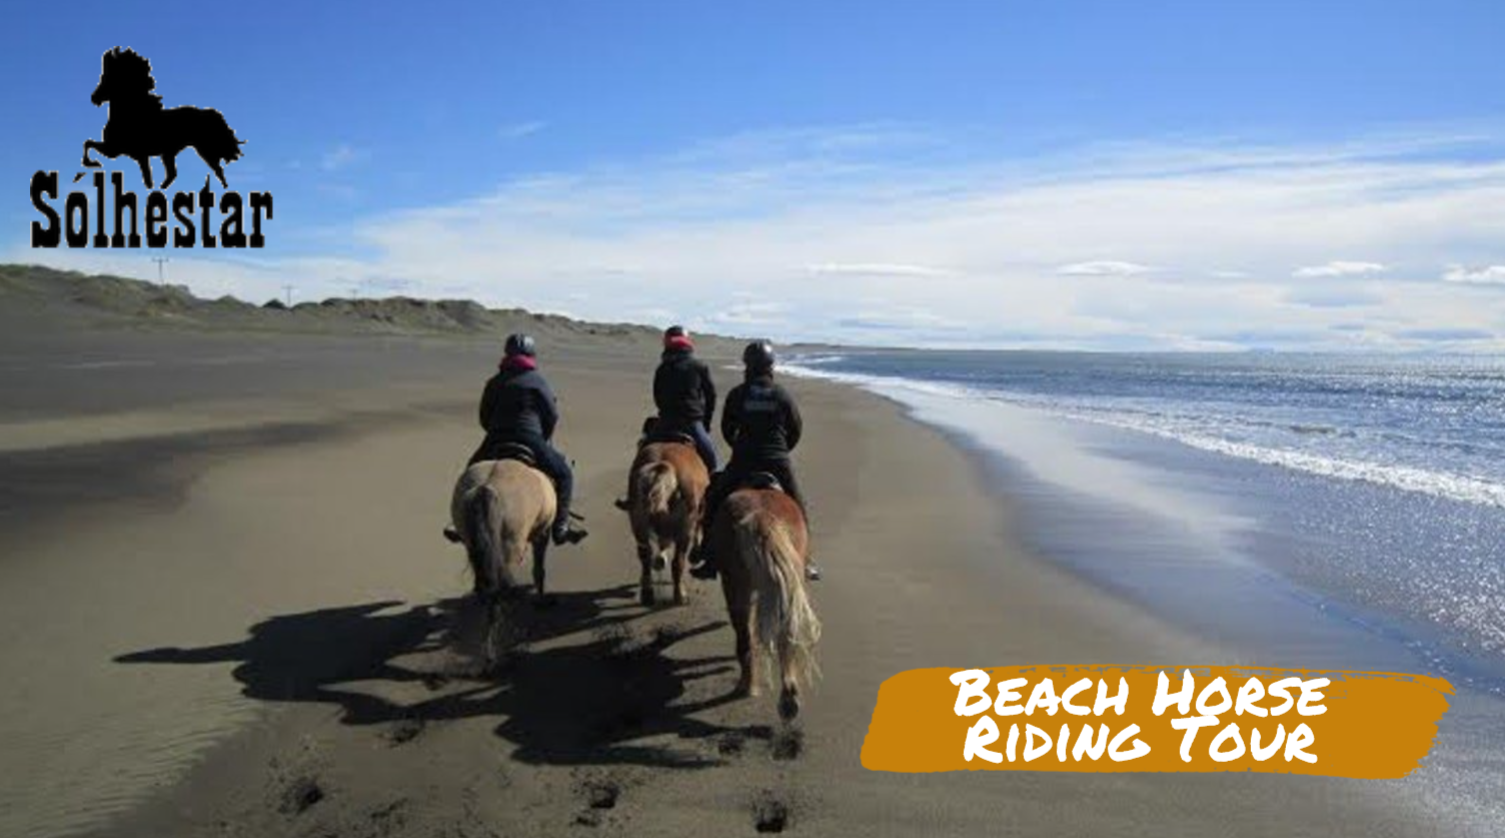 Beach Horse Riding Tour